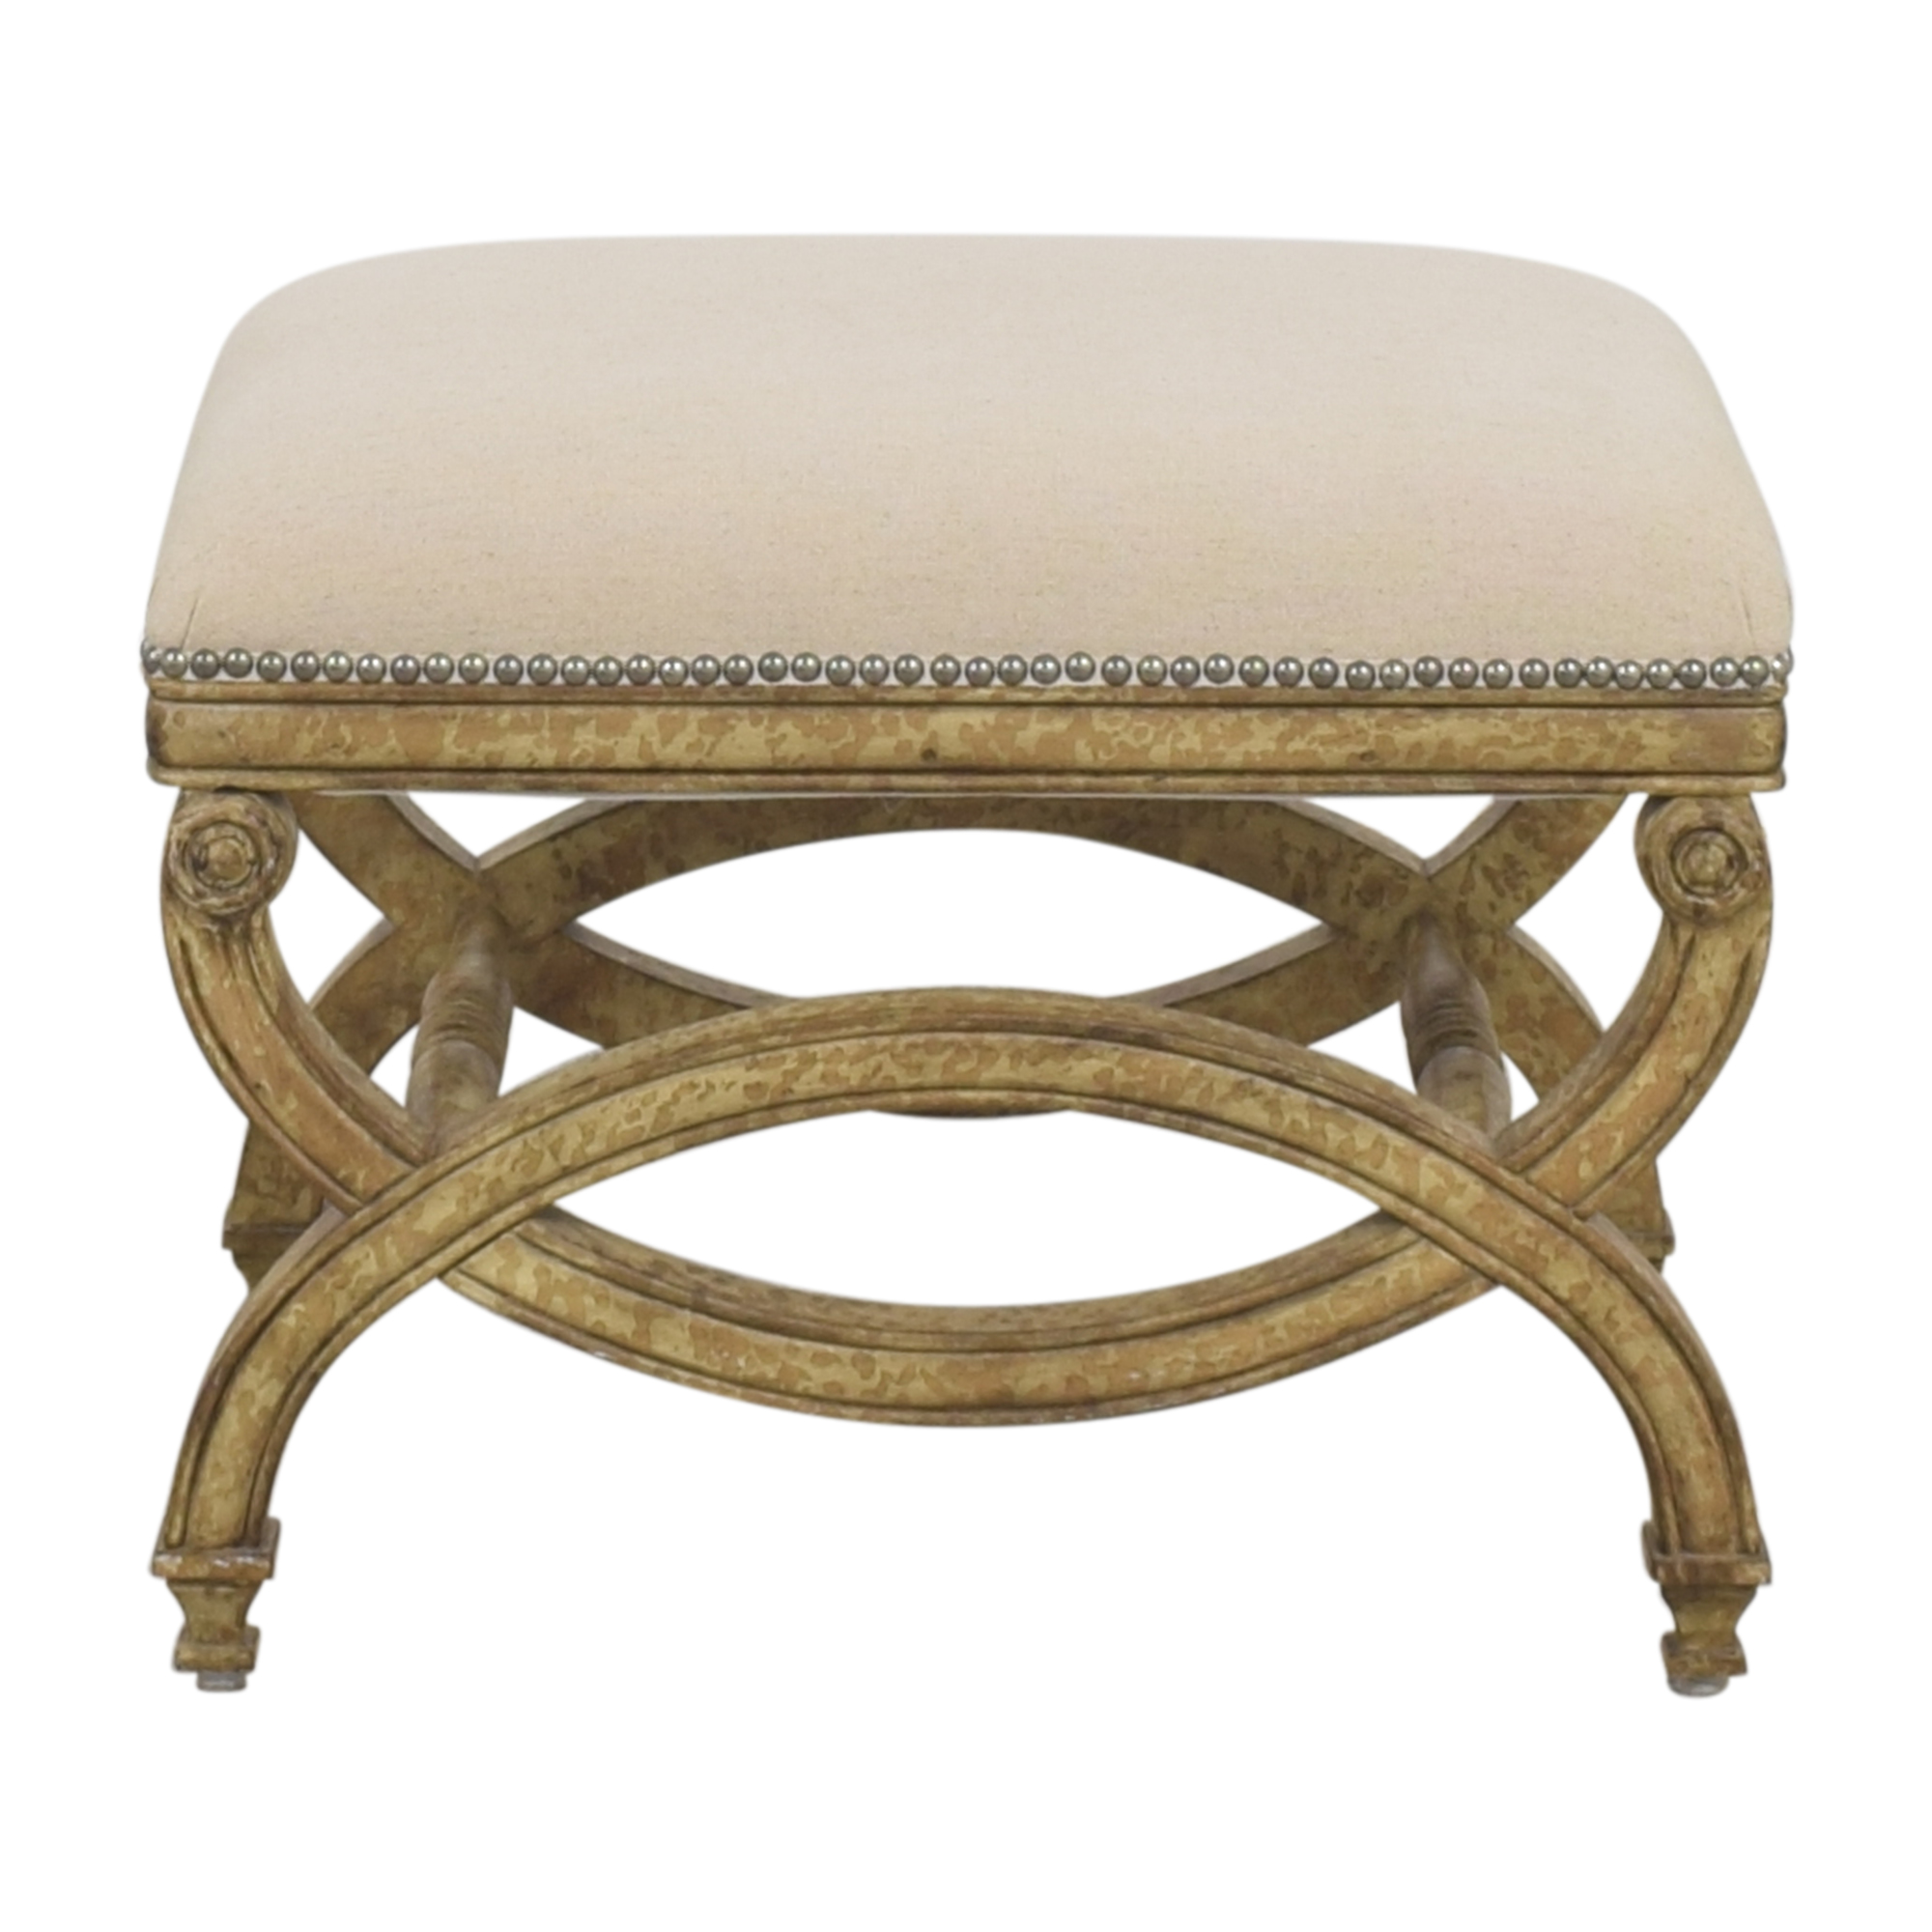 Uttermost Uttermost Karline Vanity Bench Chairs